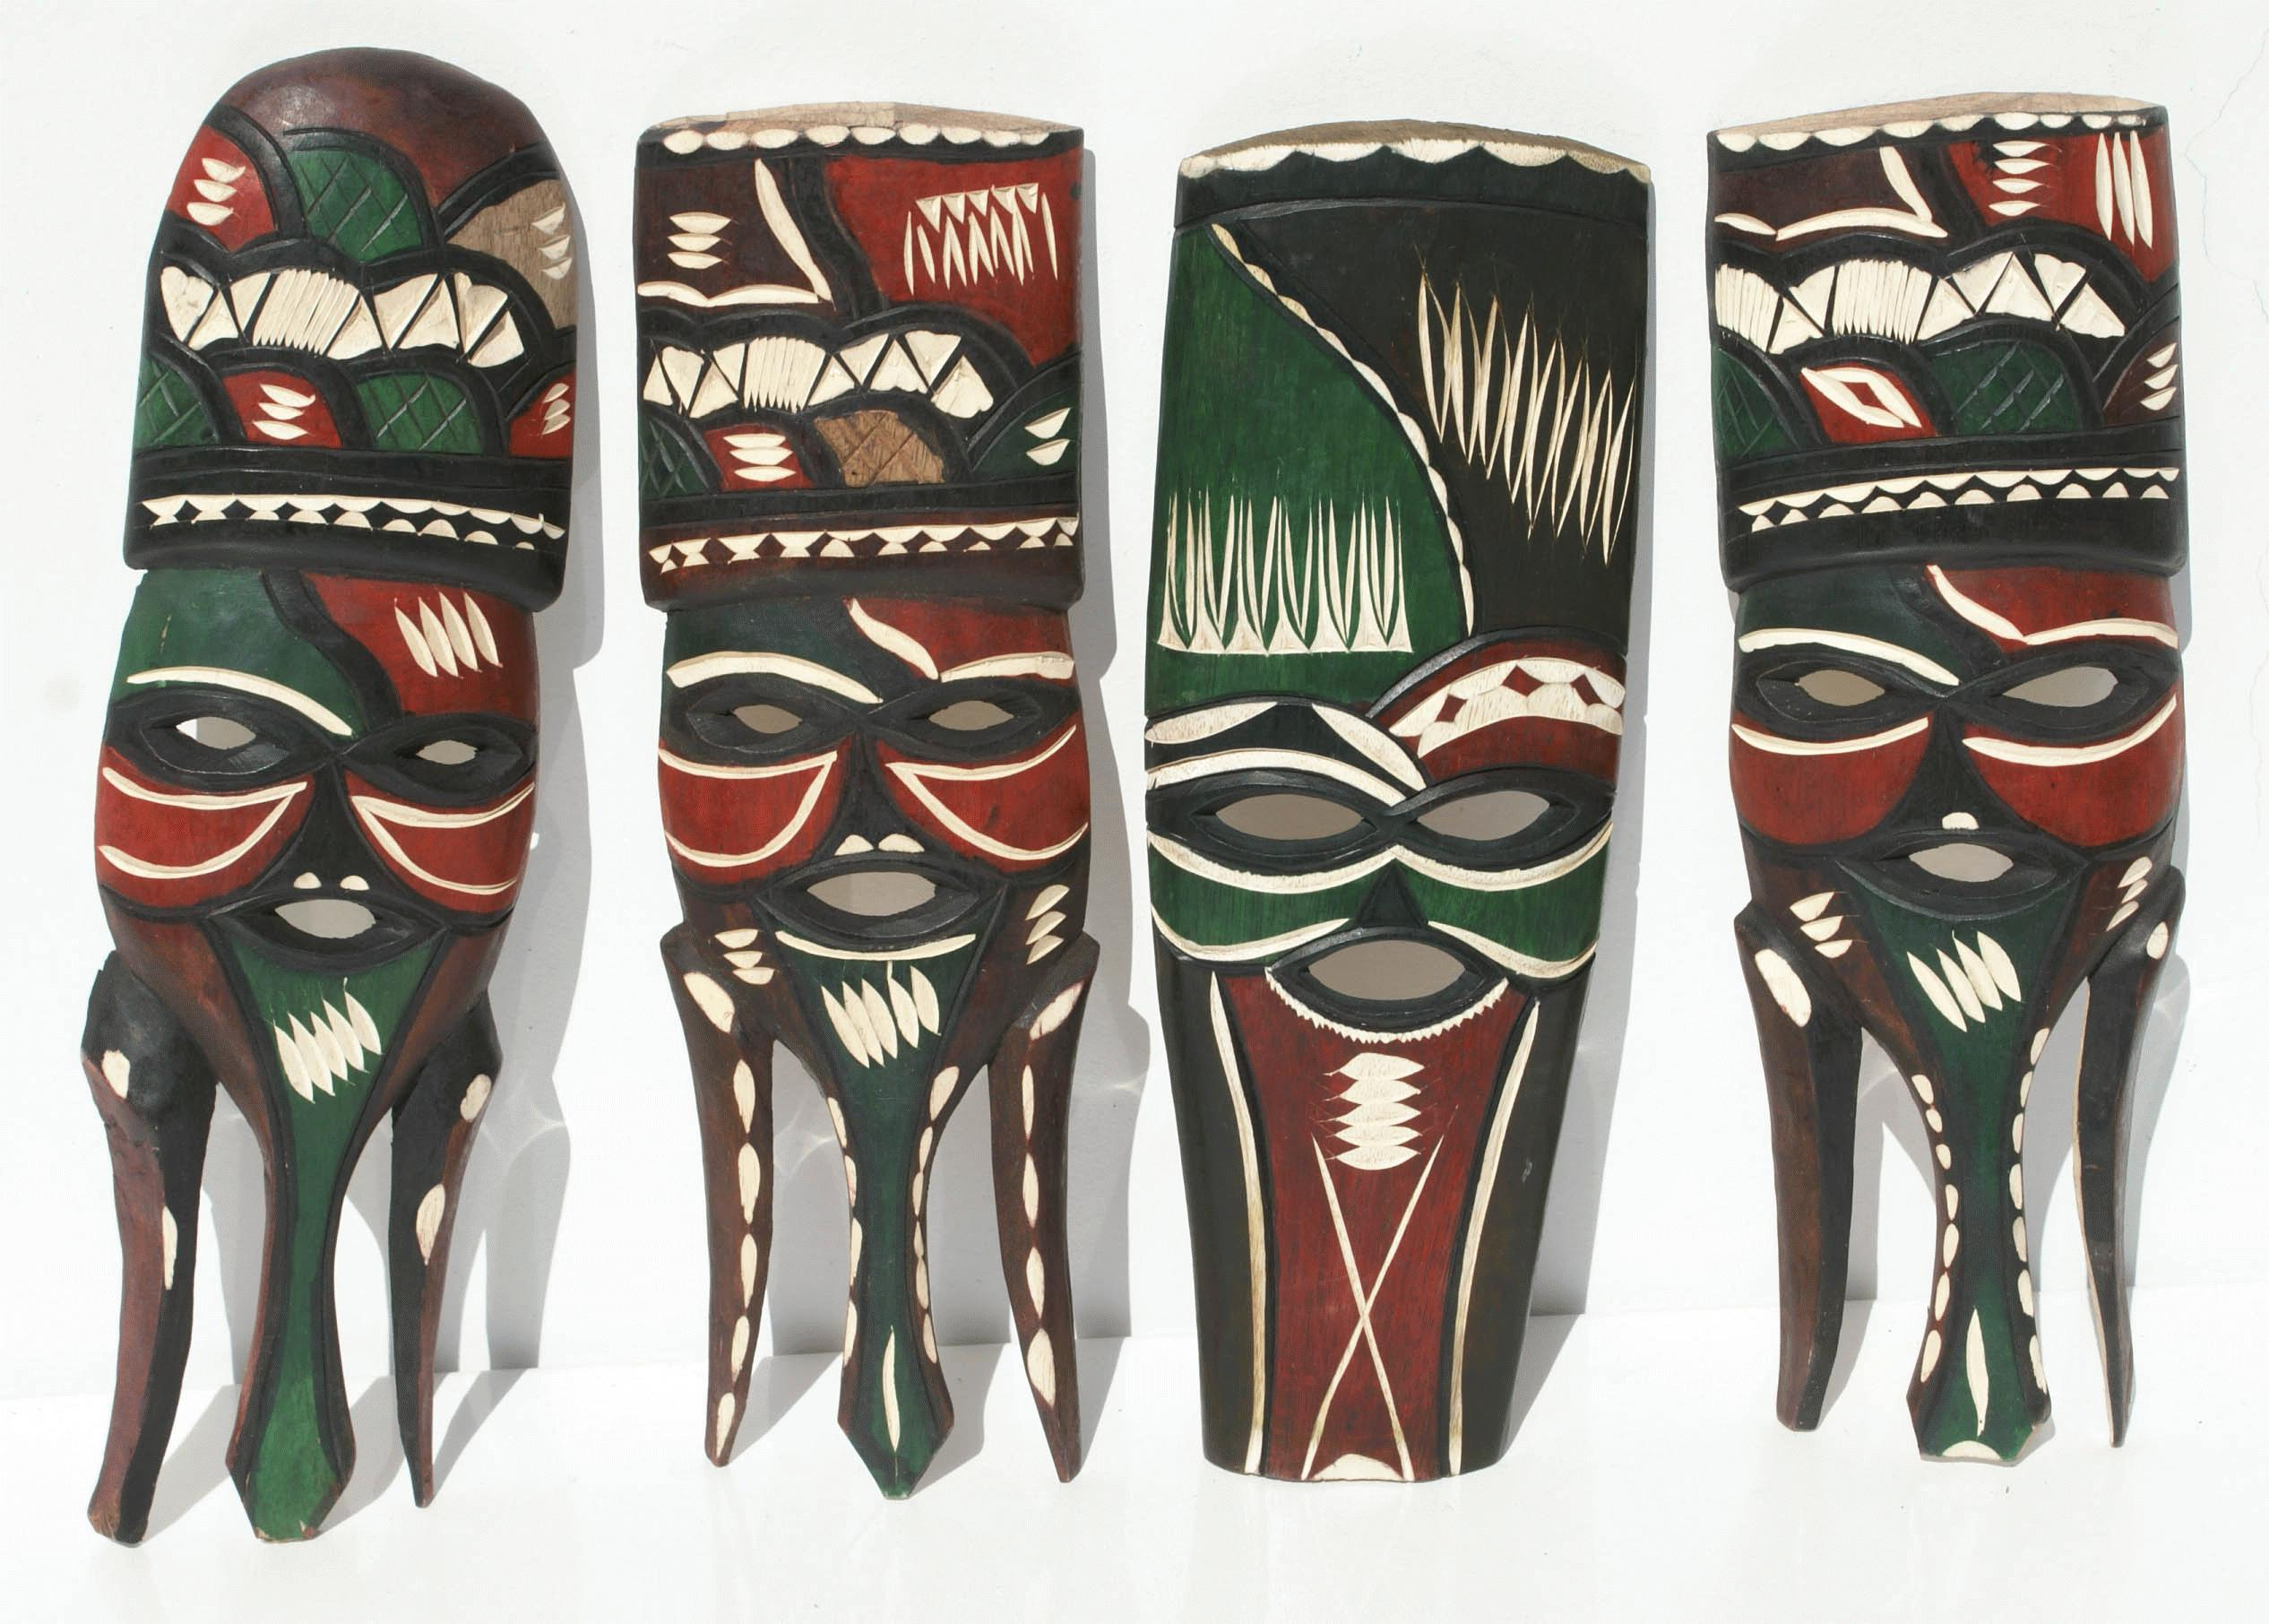 Masque Venitien Decoration Murale Tribal Mask, Handmade Products From Lesotho, Africa